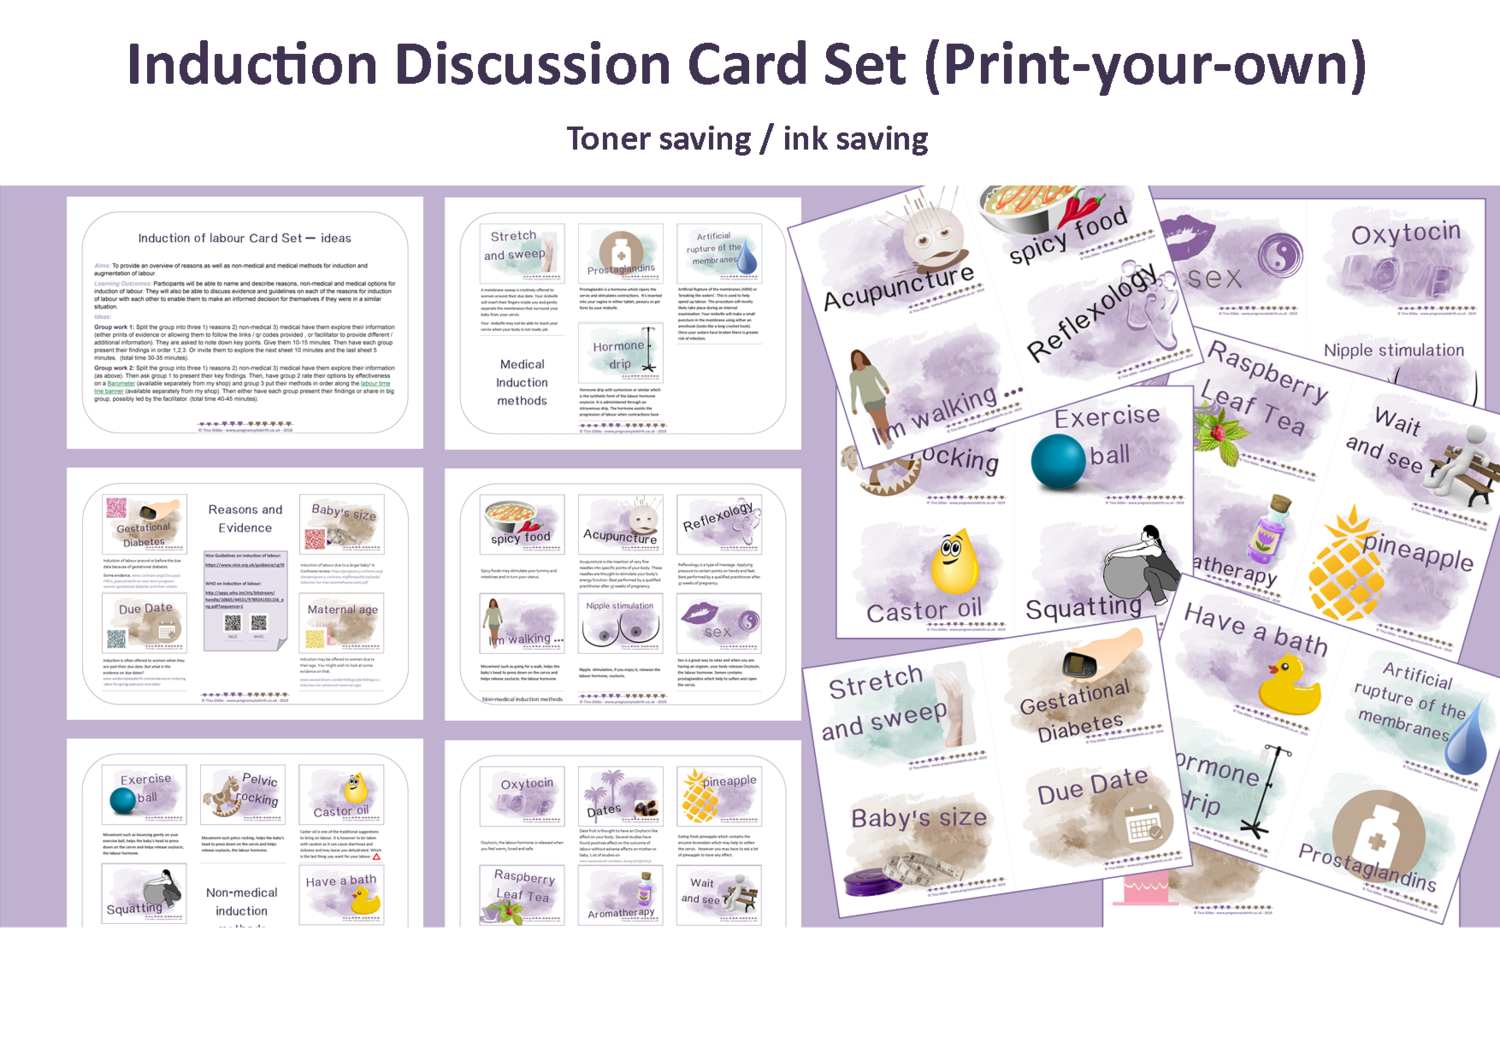 Induction of labour - Print-your-own pdf - ink save